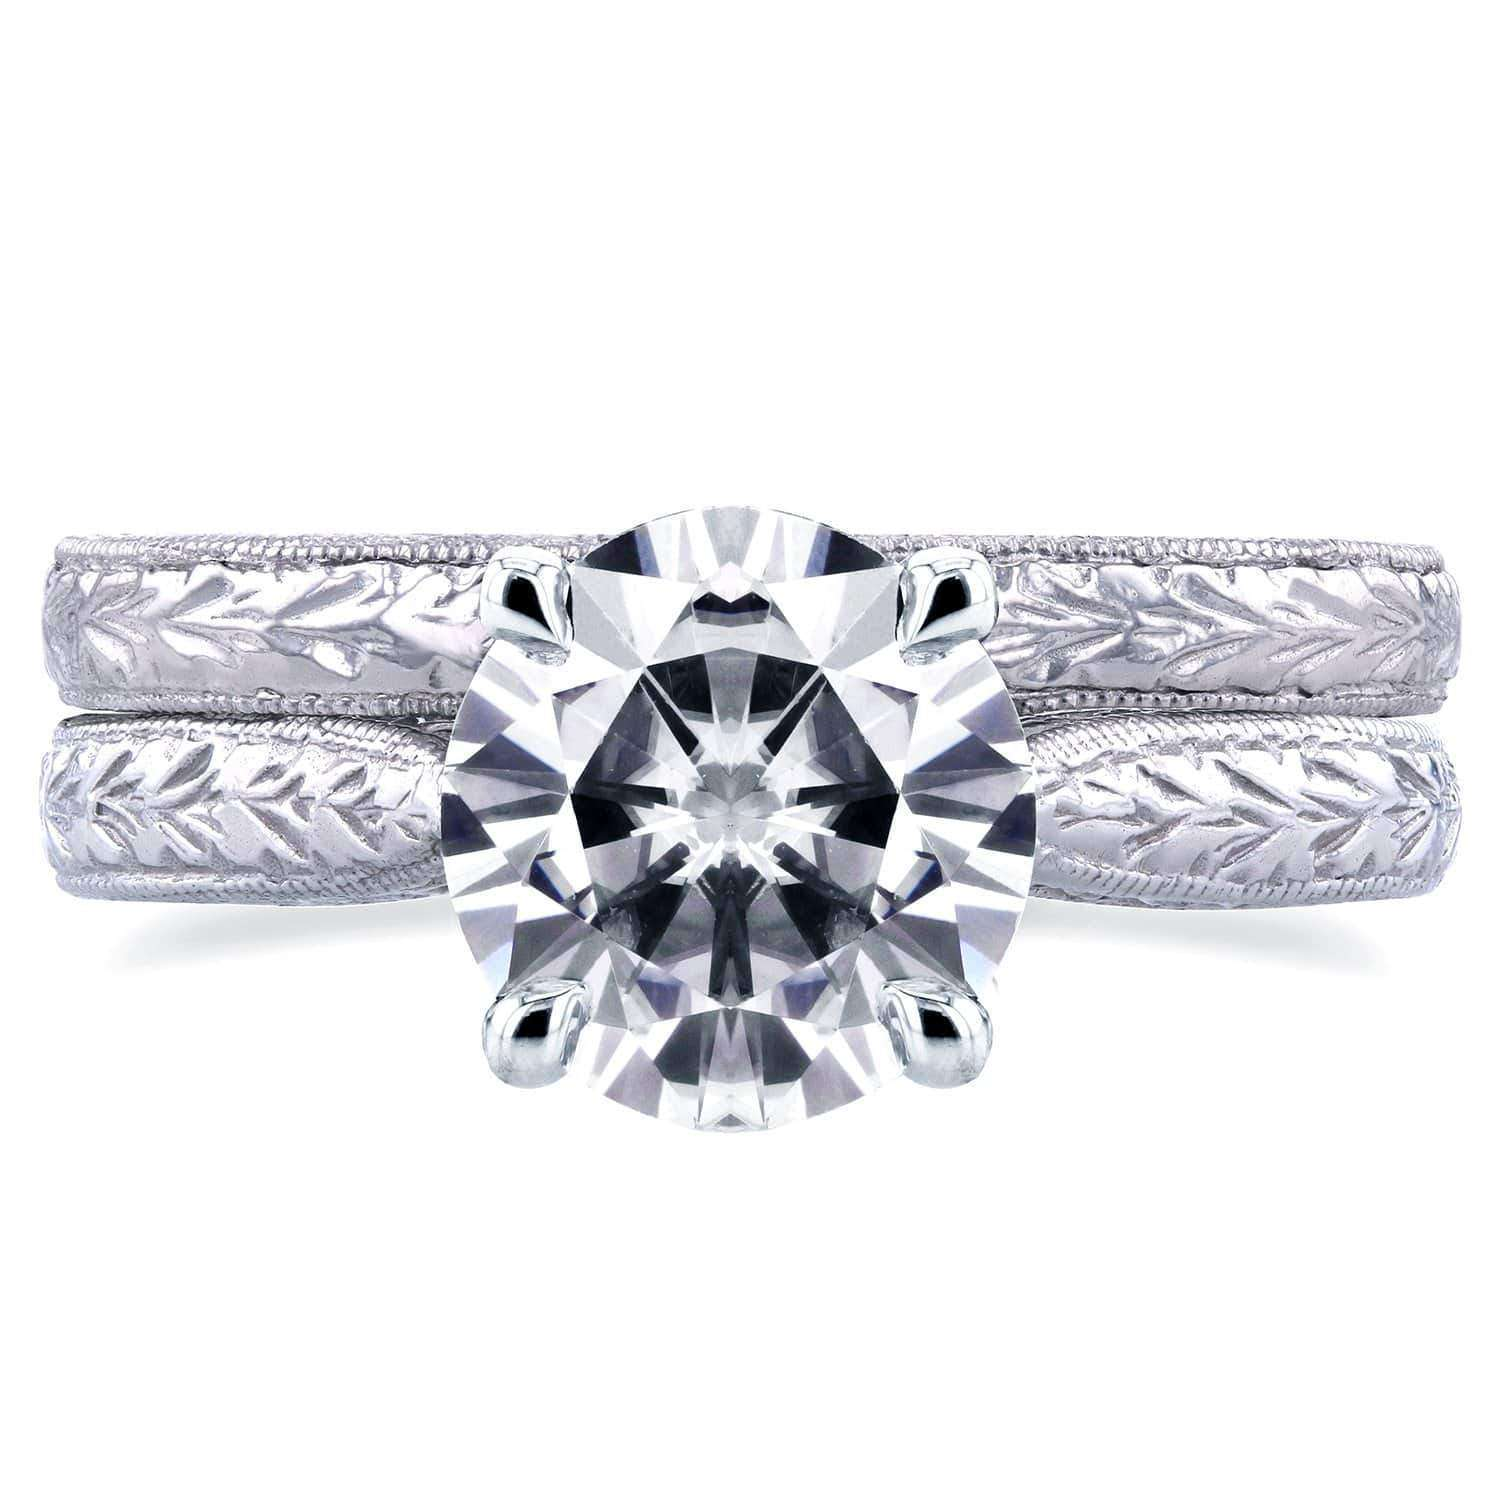 Promos Near-Colorless (F-G) Moissanite and Diamond Antique Cathedral Bridal Set 1 1/2 CTW in 14k White Gold - 6.5